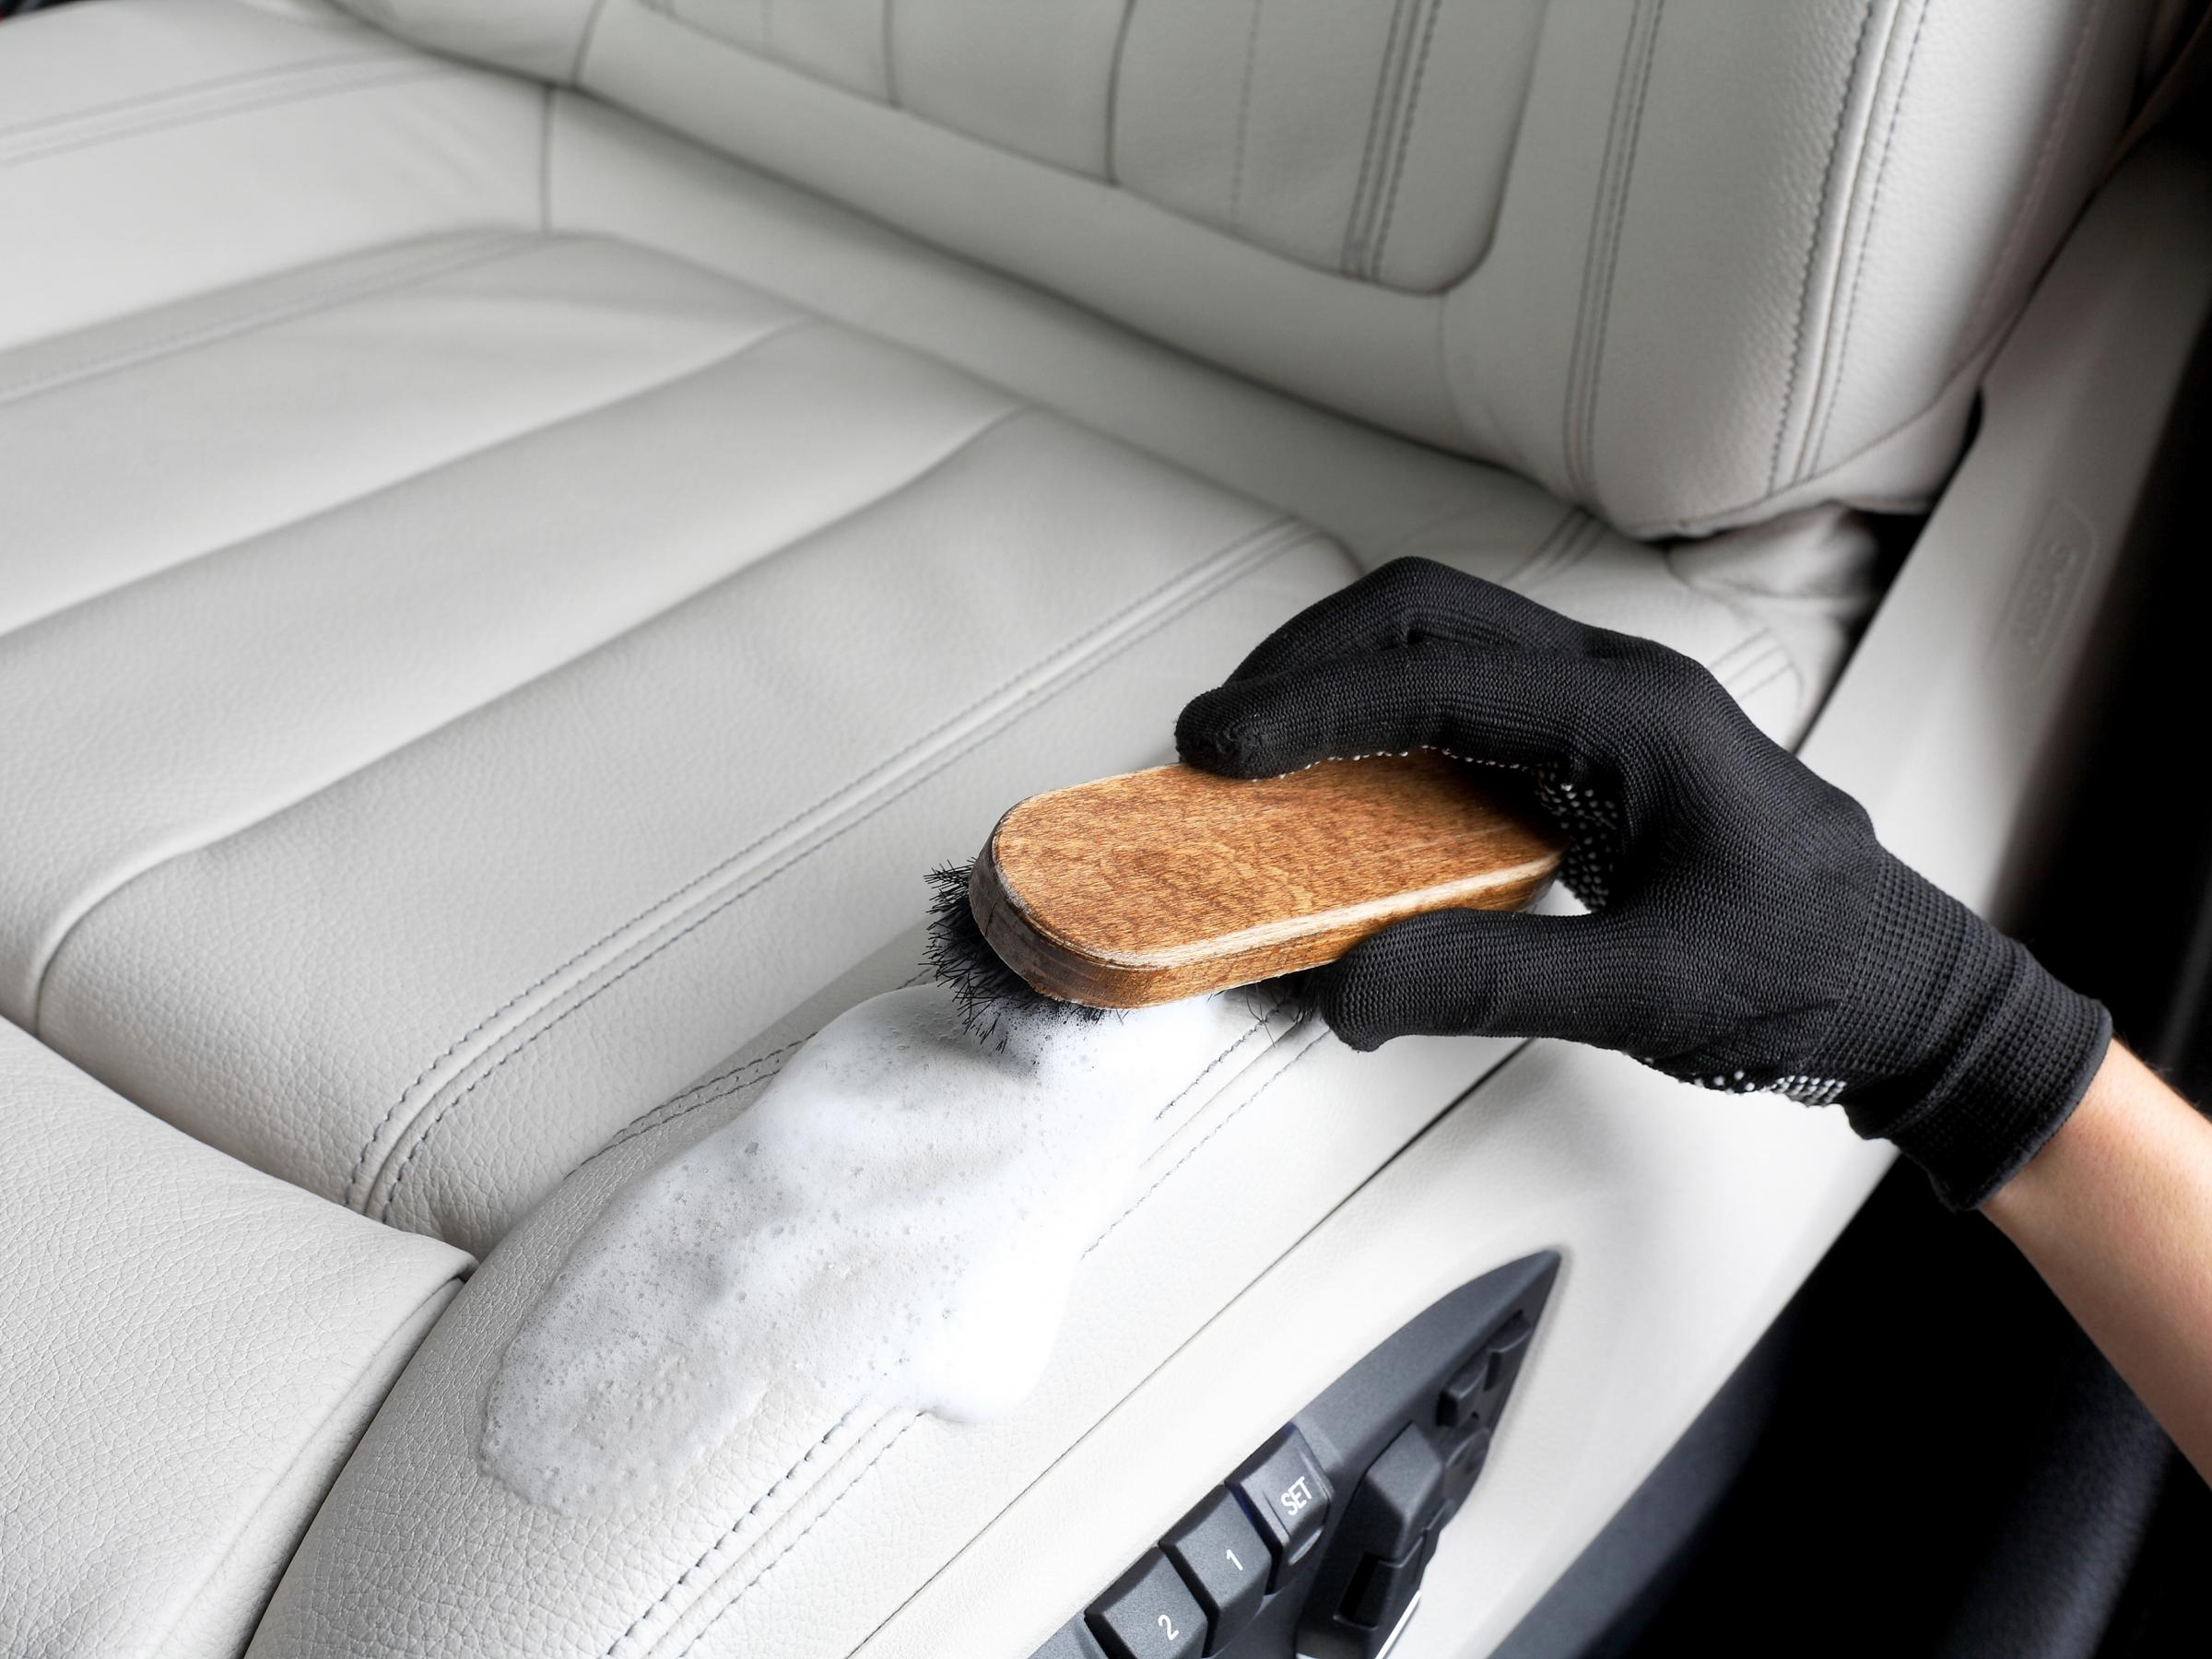 alcantara car seats and leather furniture upholstery by COLOURLOCK COLOURLOCK Leather /& Textile Cleaning Brush for car interiors